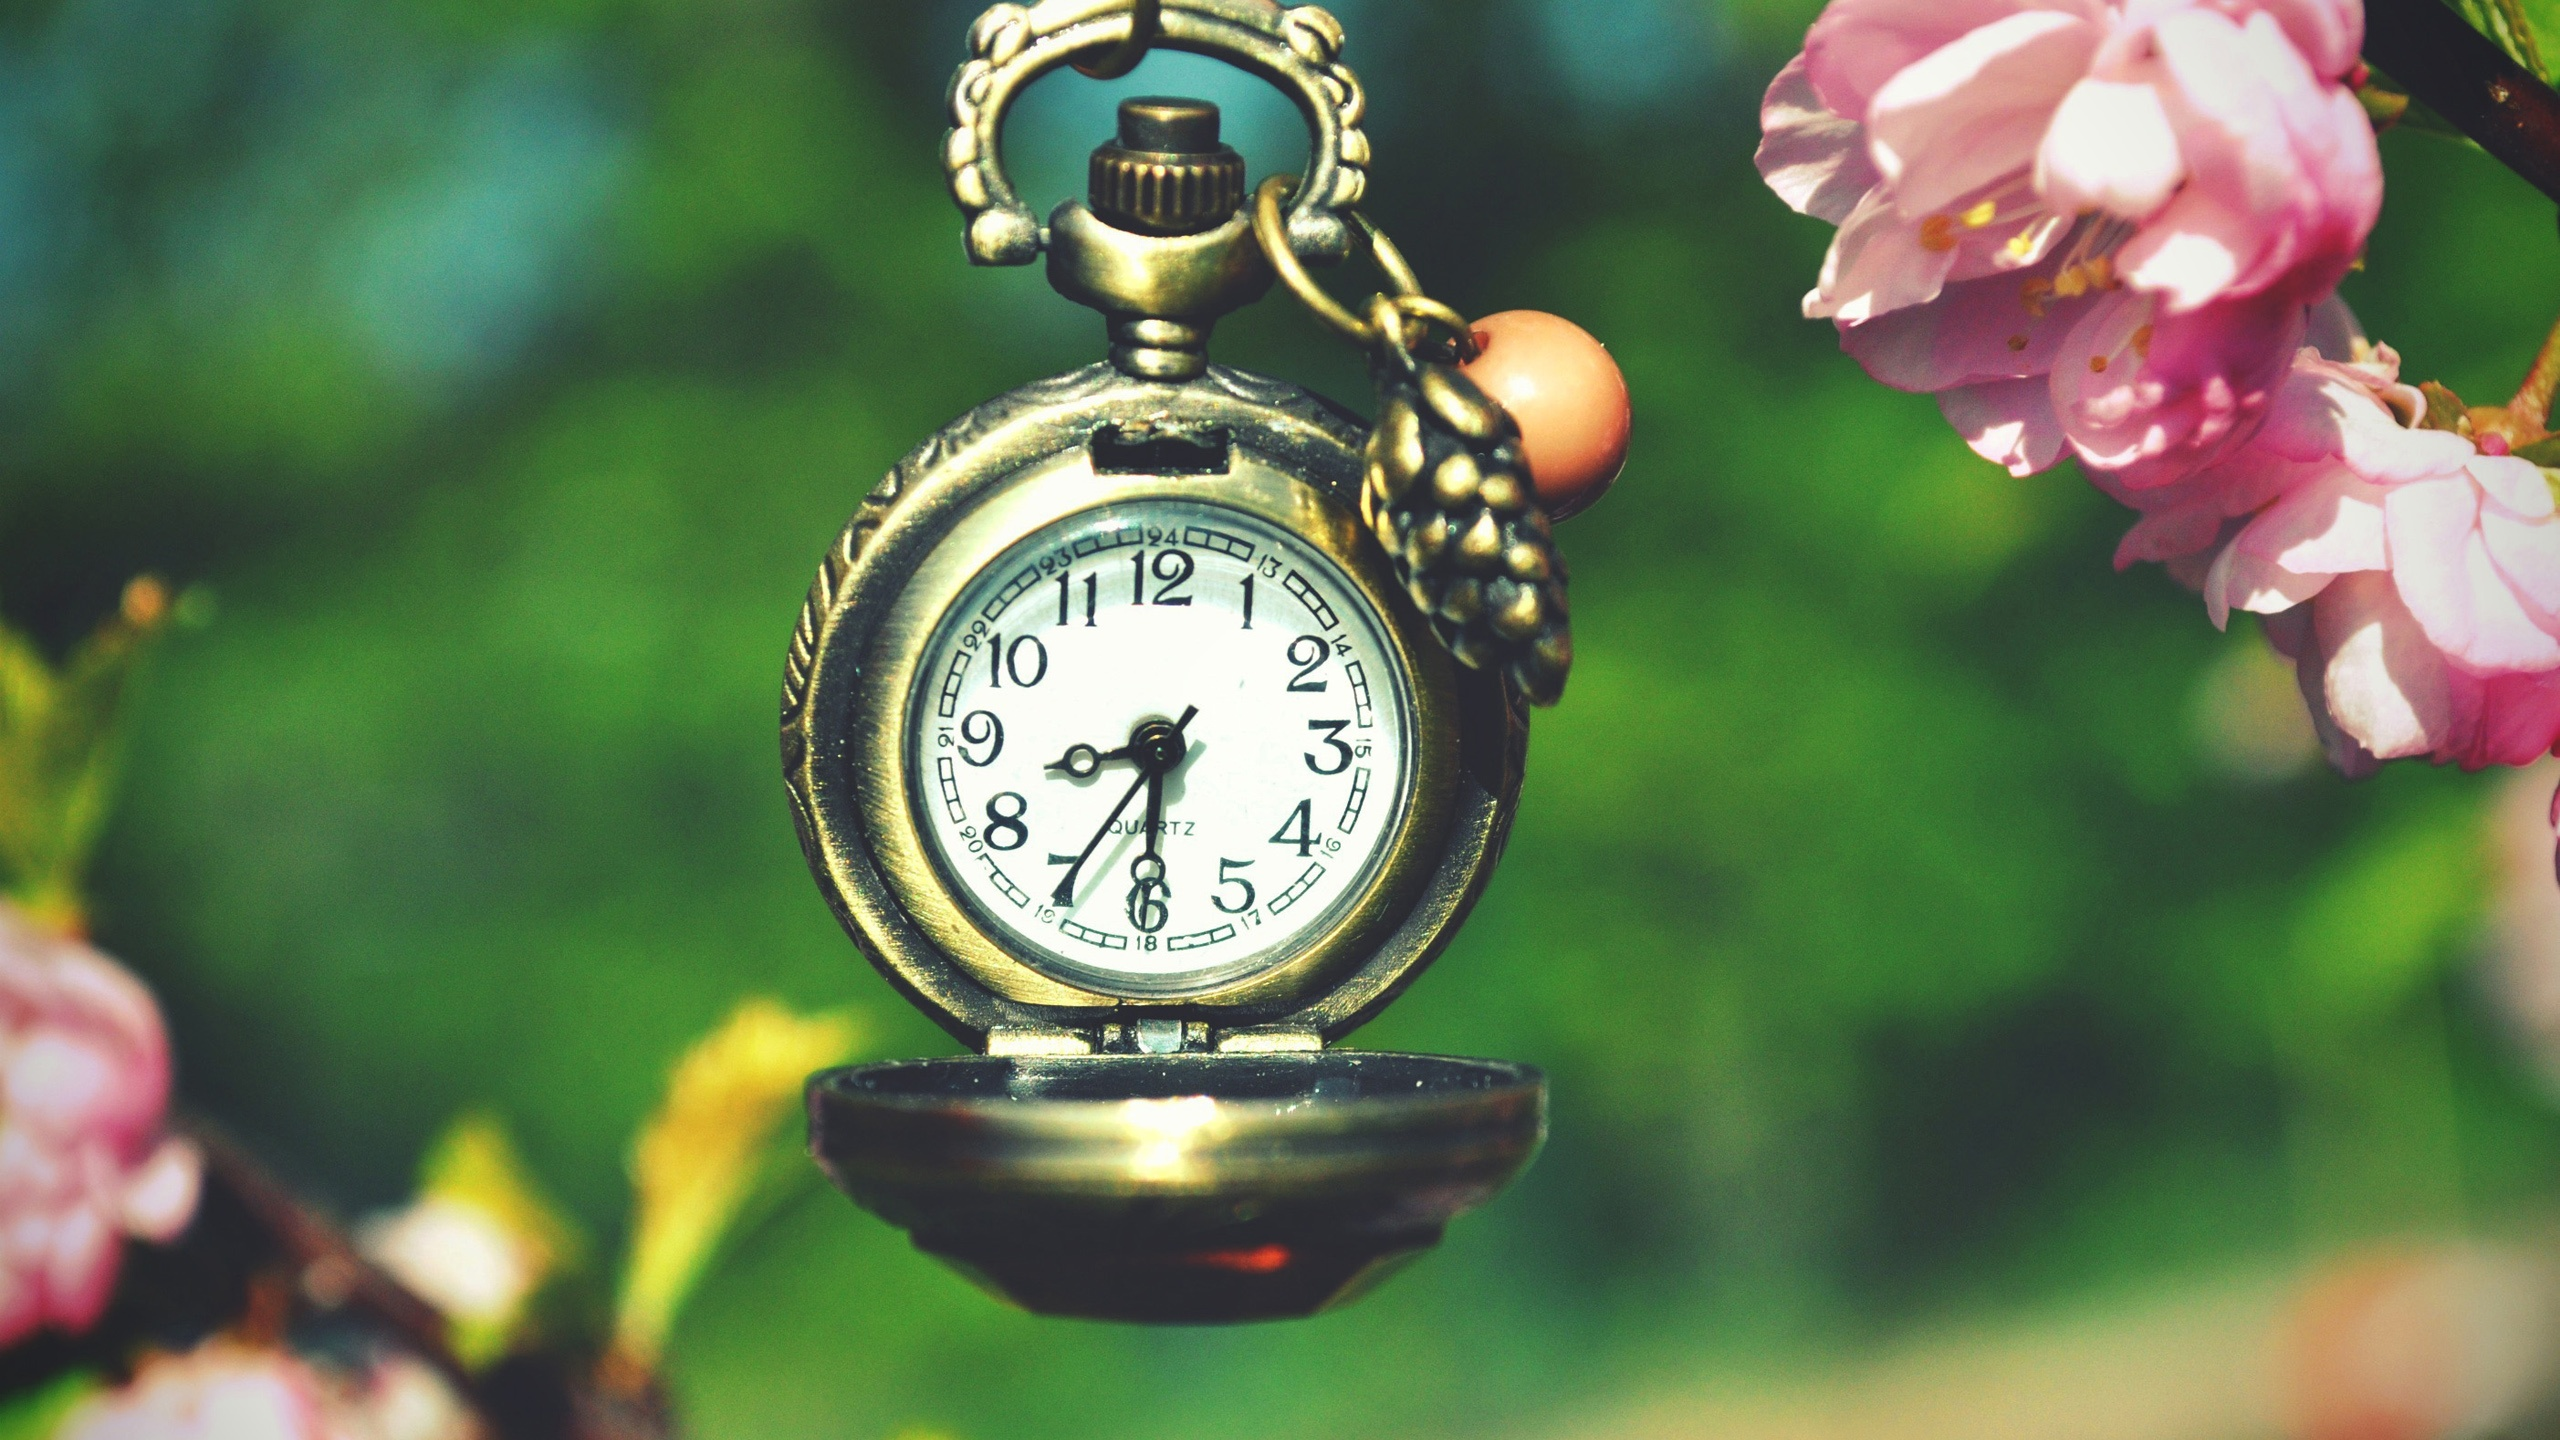 Clock time 2560x1600 HD Picture, Image